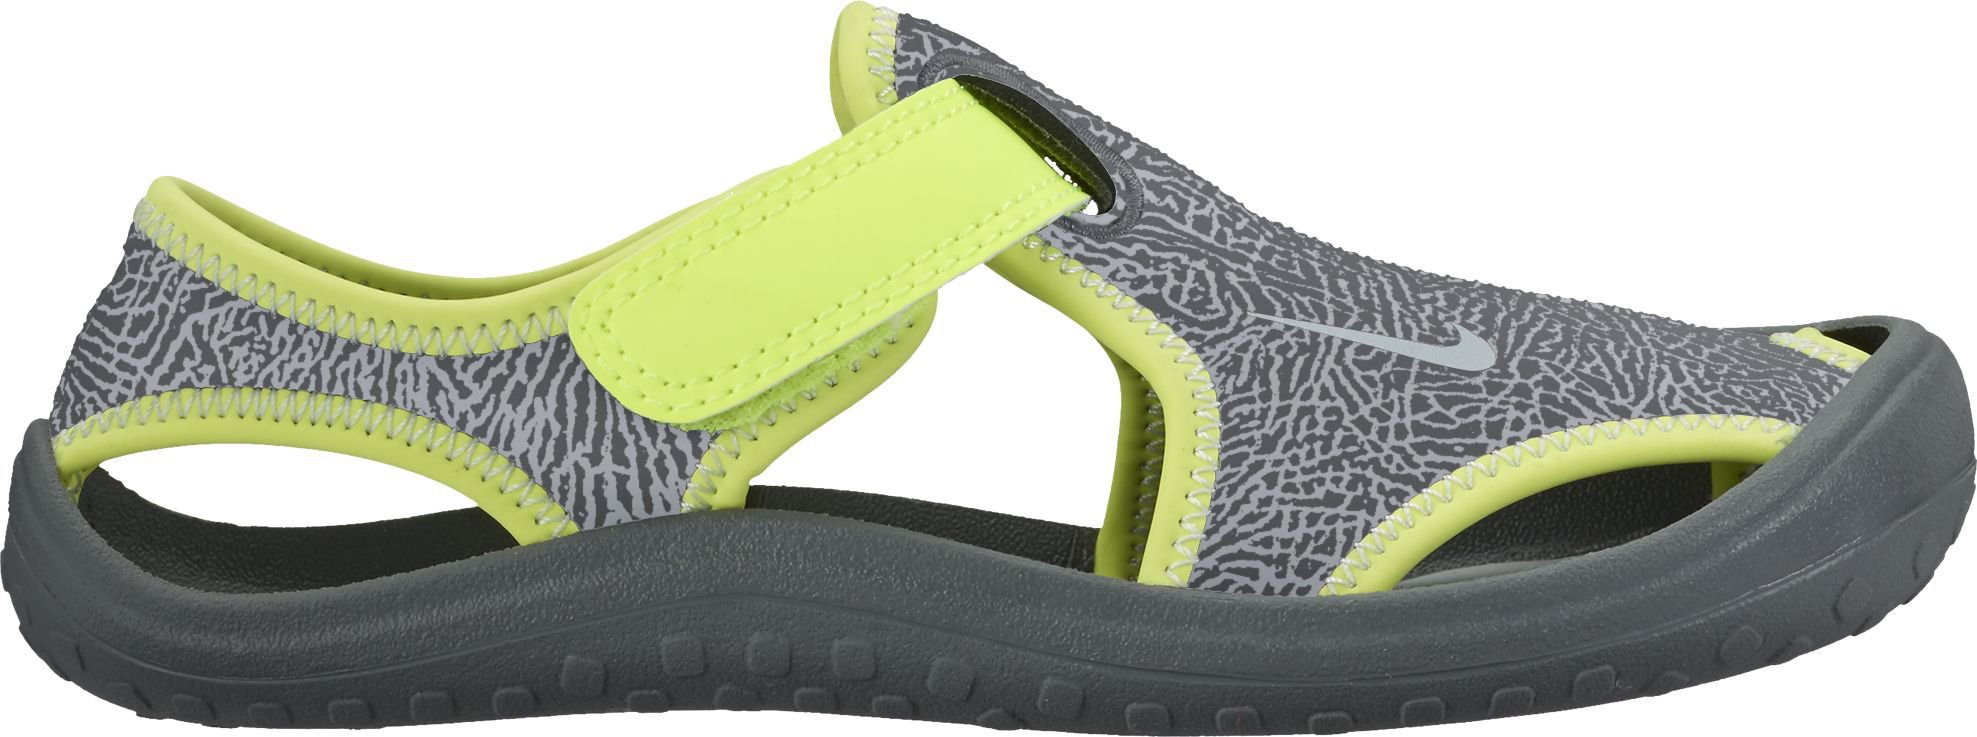 NIKE Sunray Protect (PS) Little Kid's Shoes Dark Grey/Wolf Grey/Volt 903631-002 (13 M US)